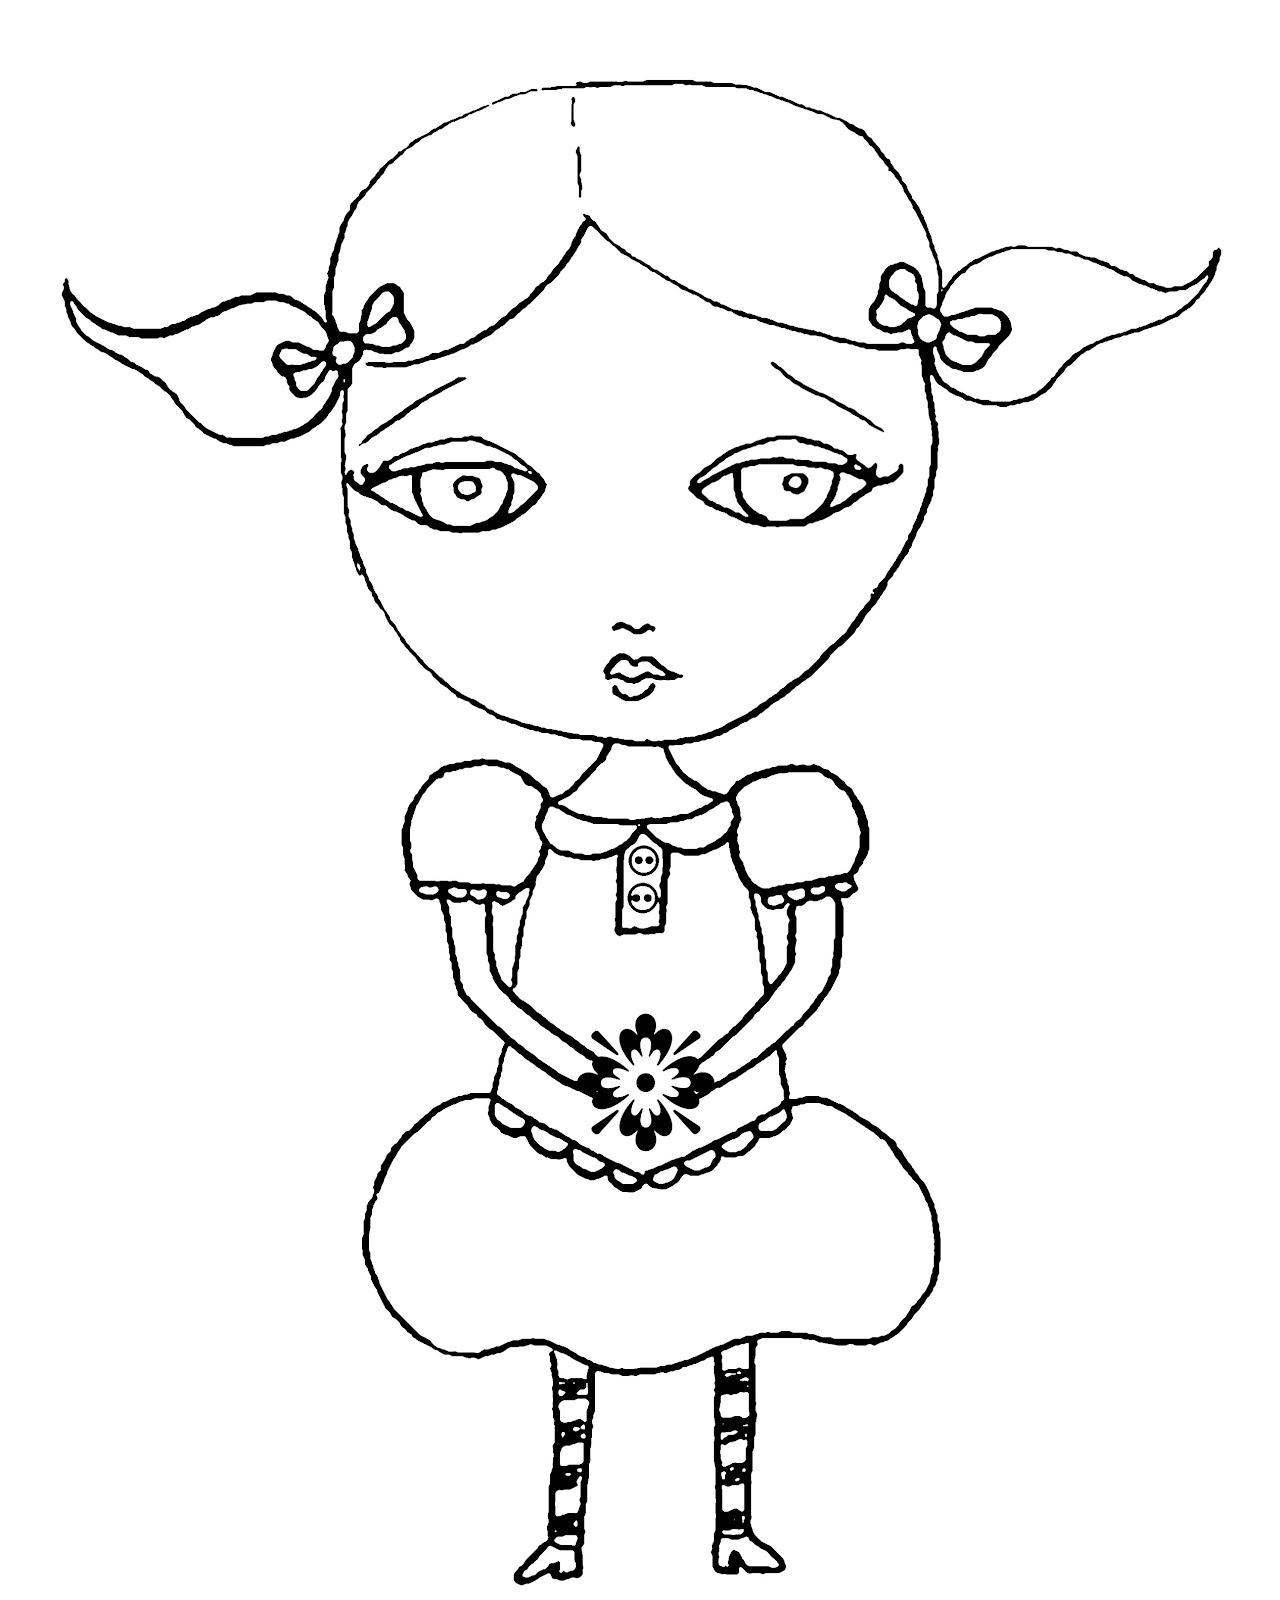 Pez-A-Doodle Designs: mixed media flower girl